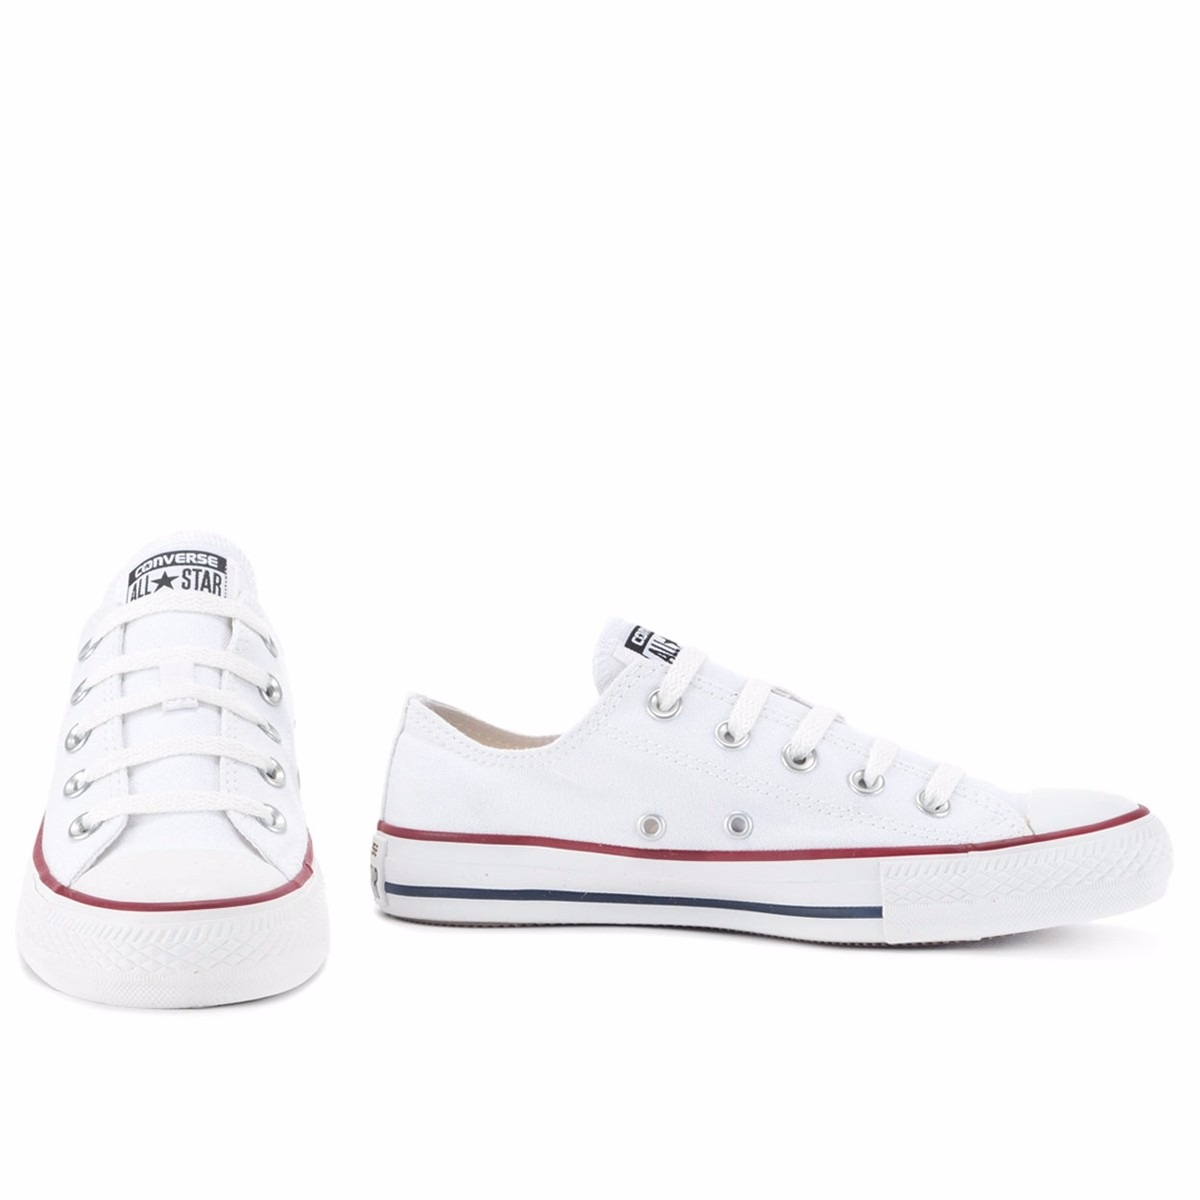 a094fec3ae tênis converse all-star ct as core ox branco ct00010001. Carregando zoom.